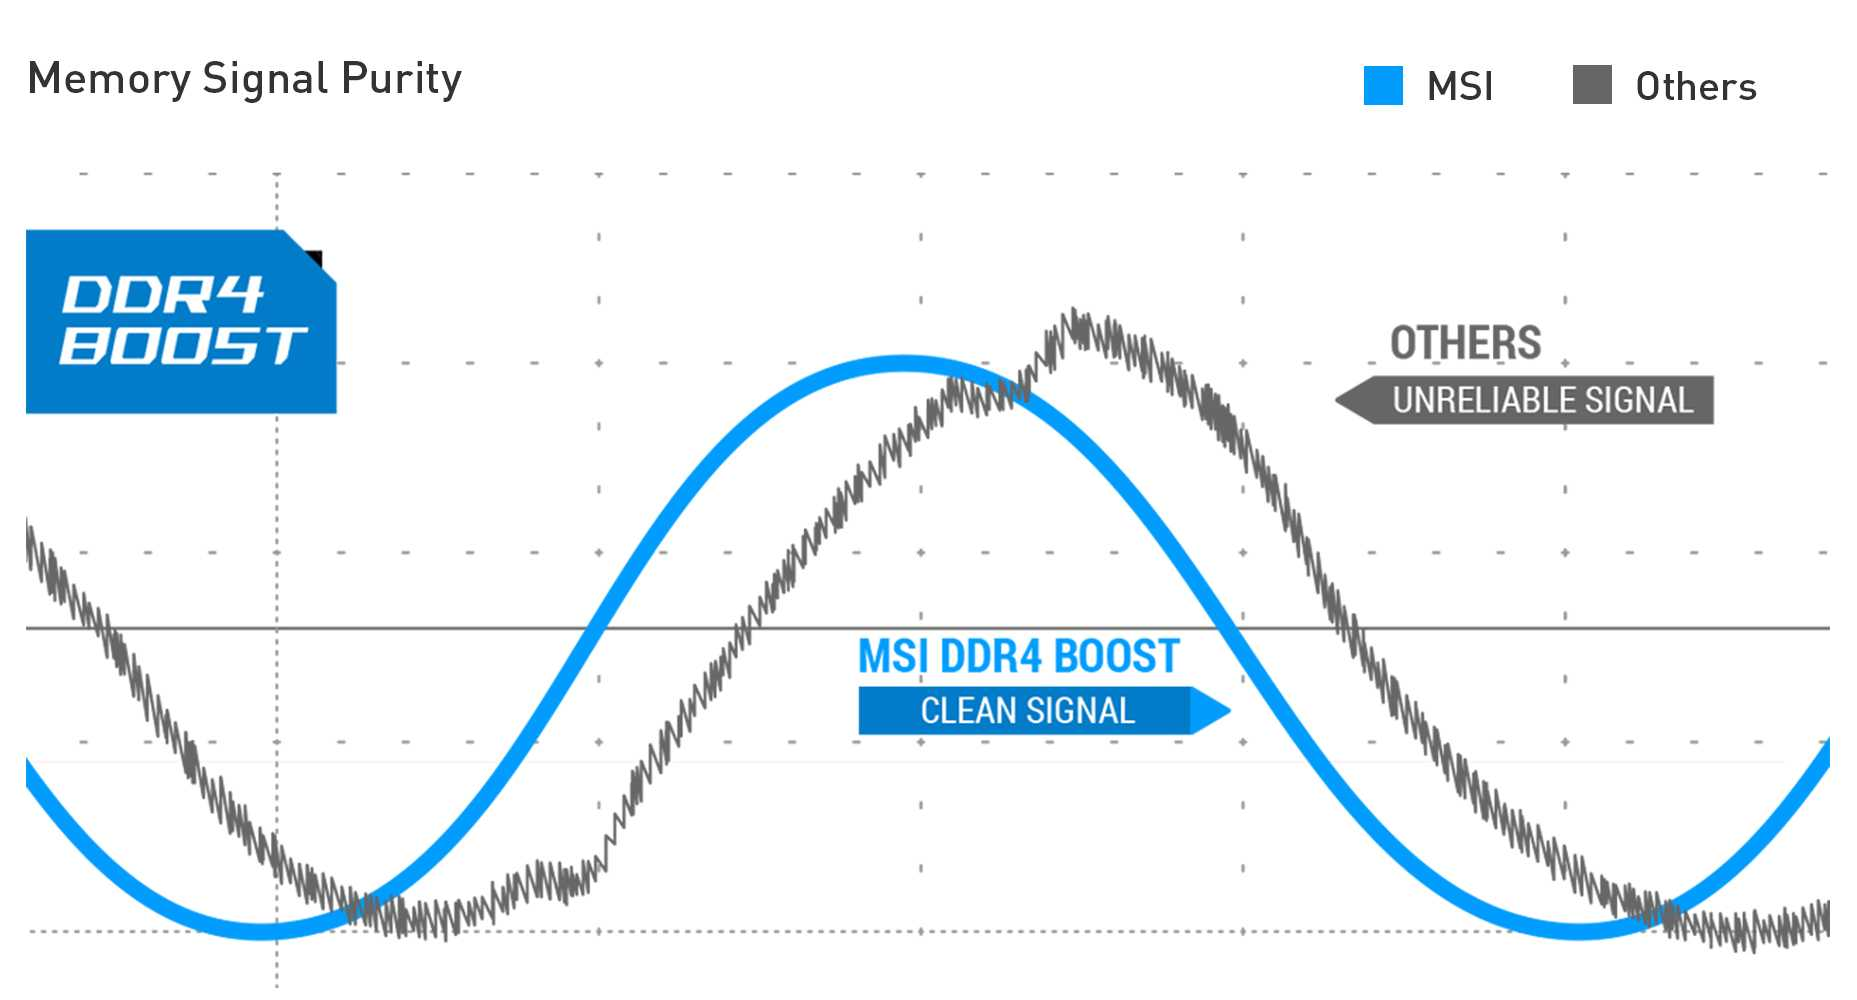 a chart showing different effect between DDR4 BOOST and OTHERS